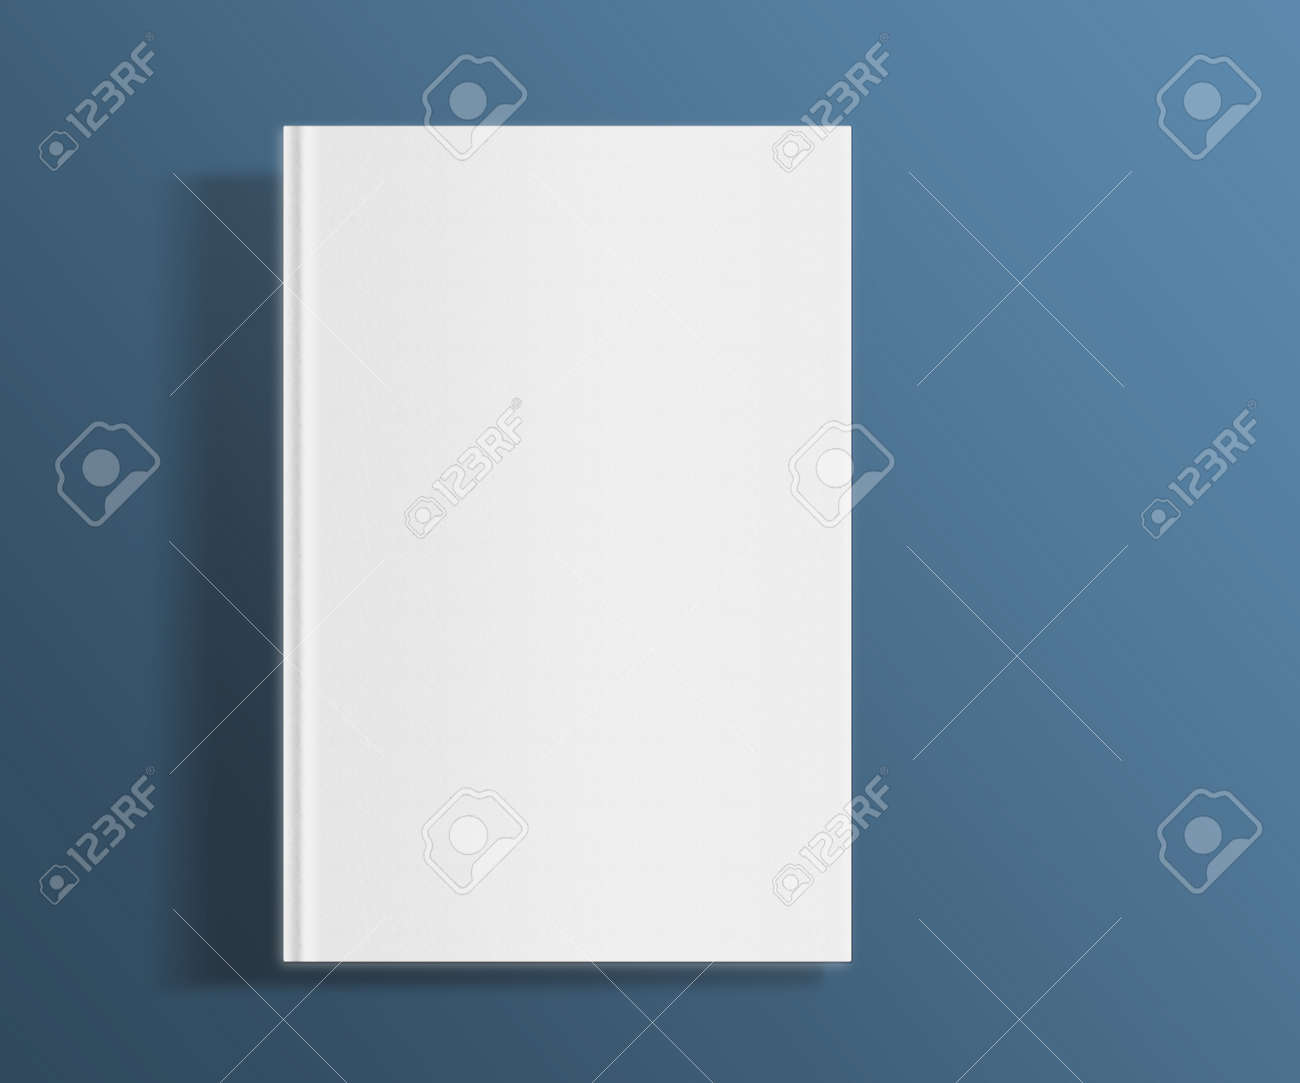 Blank Book Cover Template On Trendy Flat Background With Shadows ...